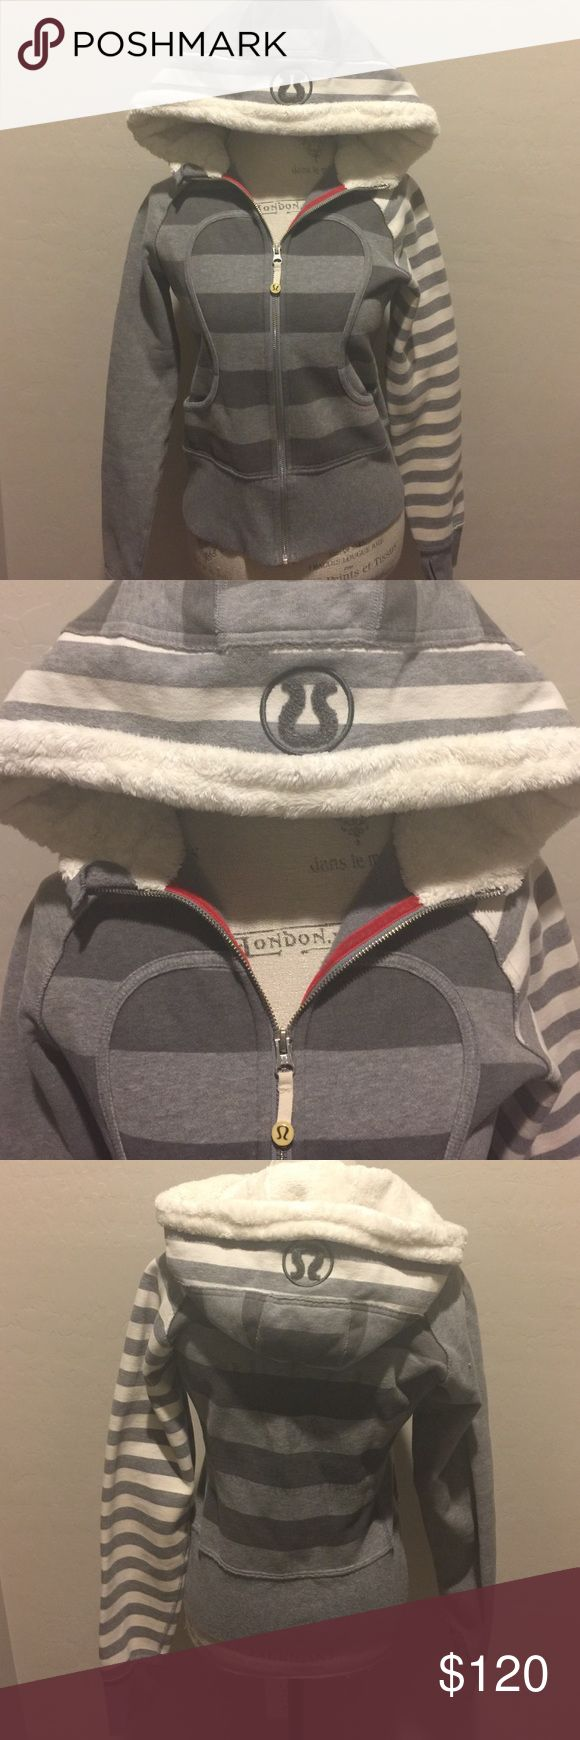 Special Edition lululemon Scuba Hoodie!!! This is a super unique lululemon Scuba Hoodie! Super detailed! Great condition!! Bought off of e bay and never wore. Needs a loving home!! lululemon athletica Tops Sweatshirts & Hoodies